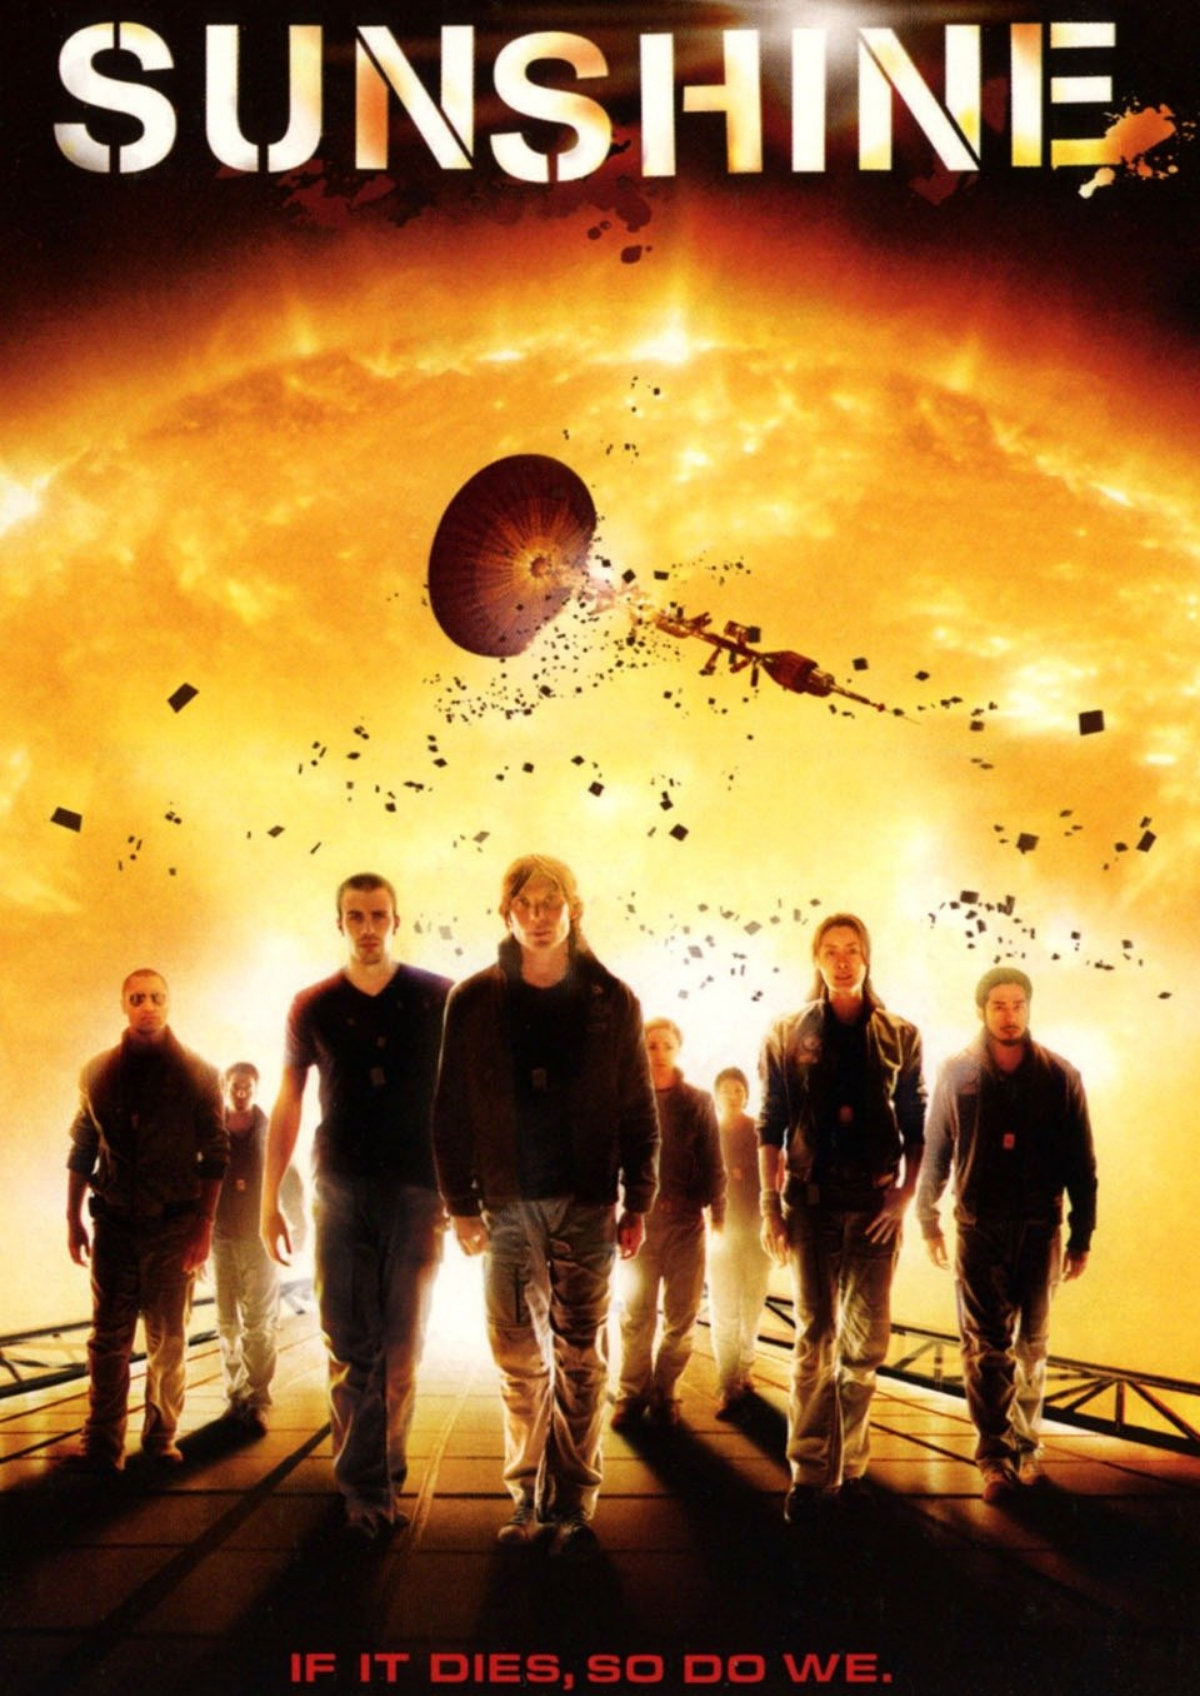 'Sunshine' movie poster